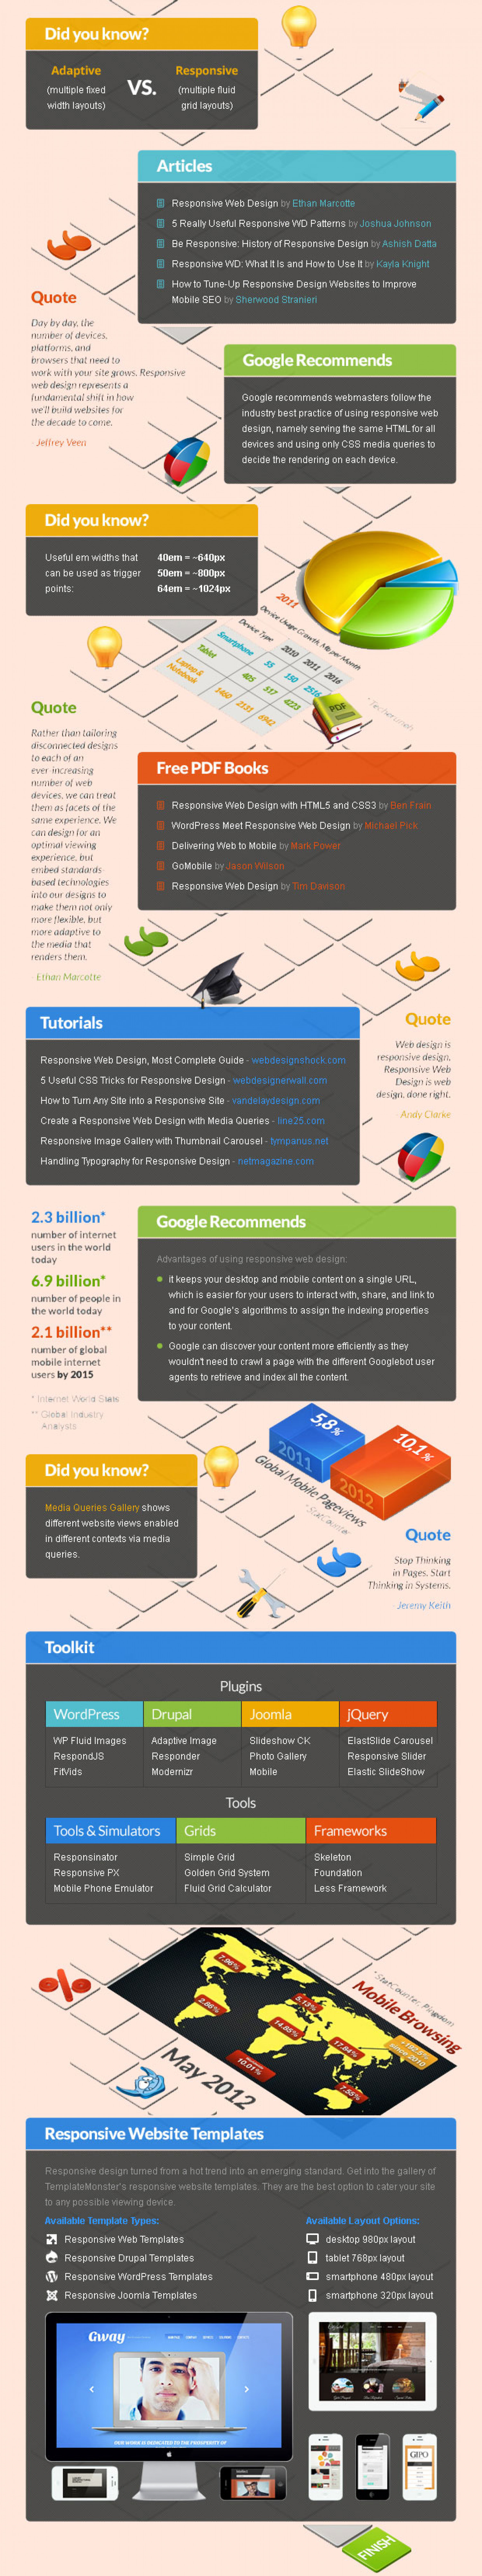 EBriks-Responsive Website Design Approach Infographic. Infographic